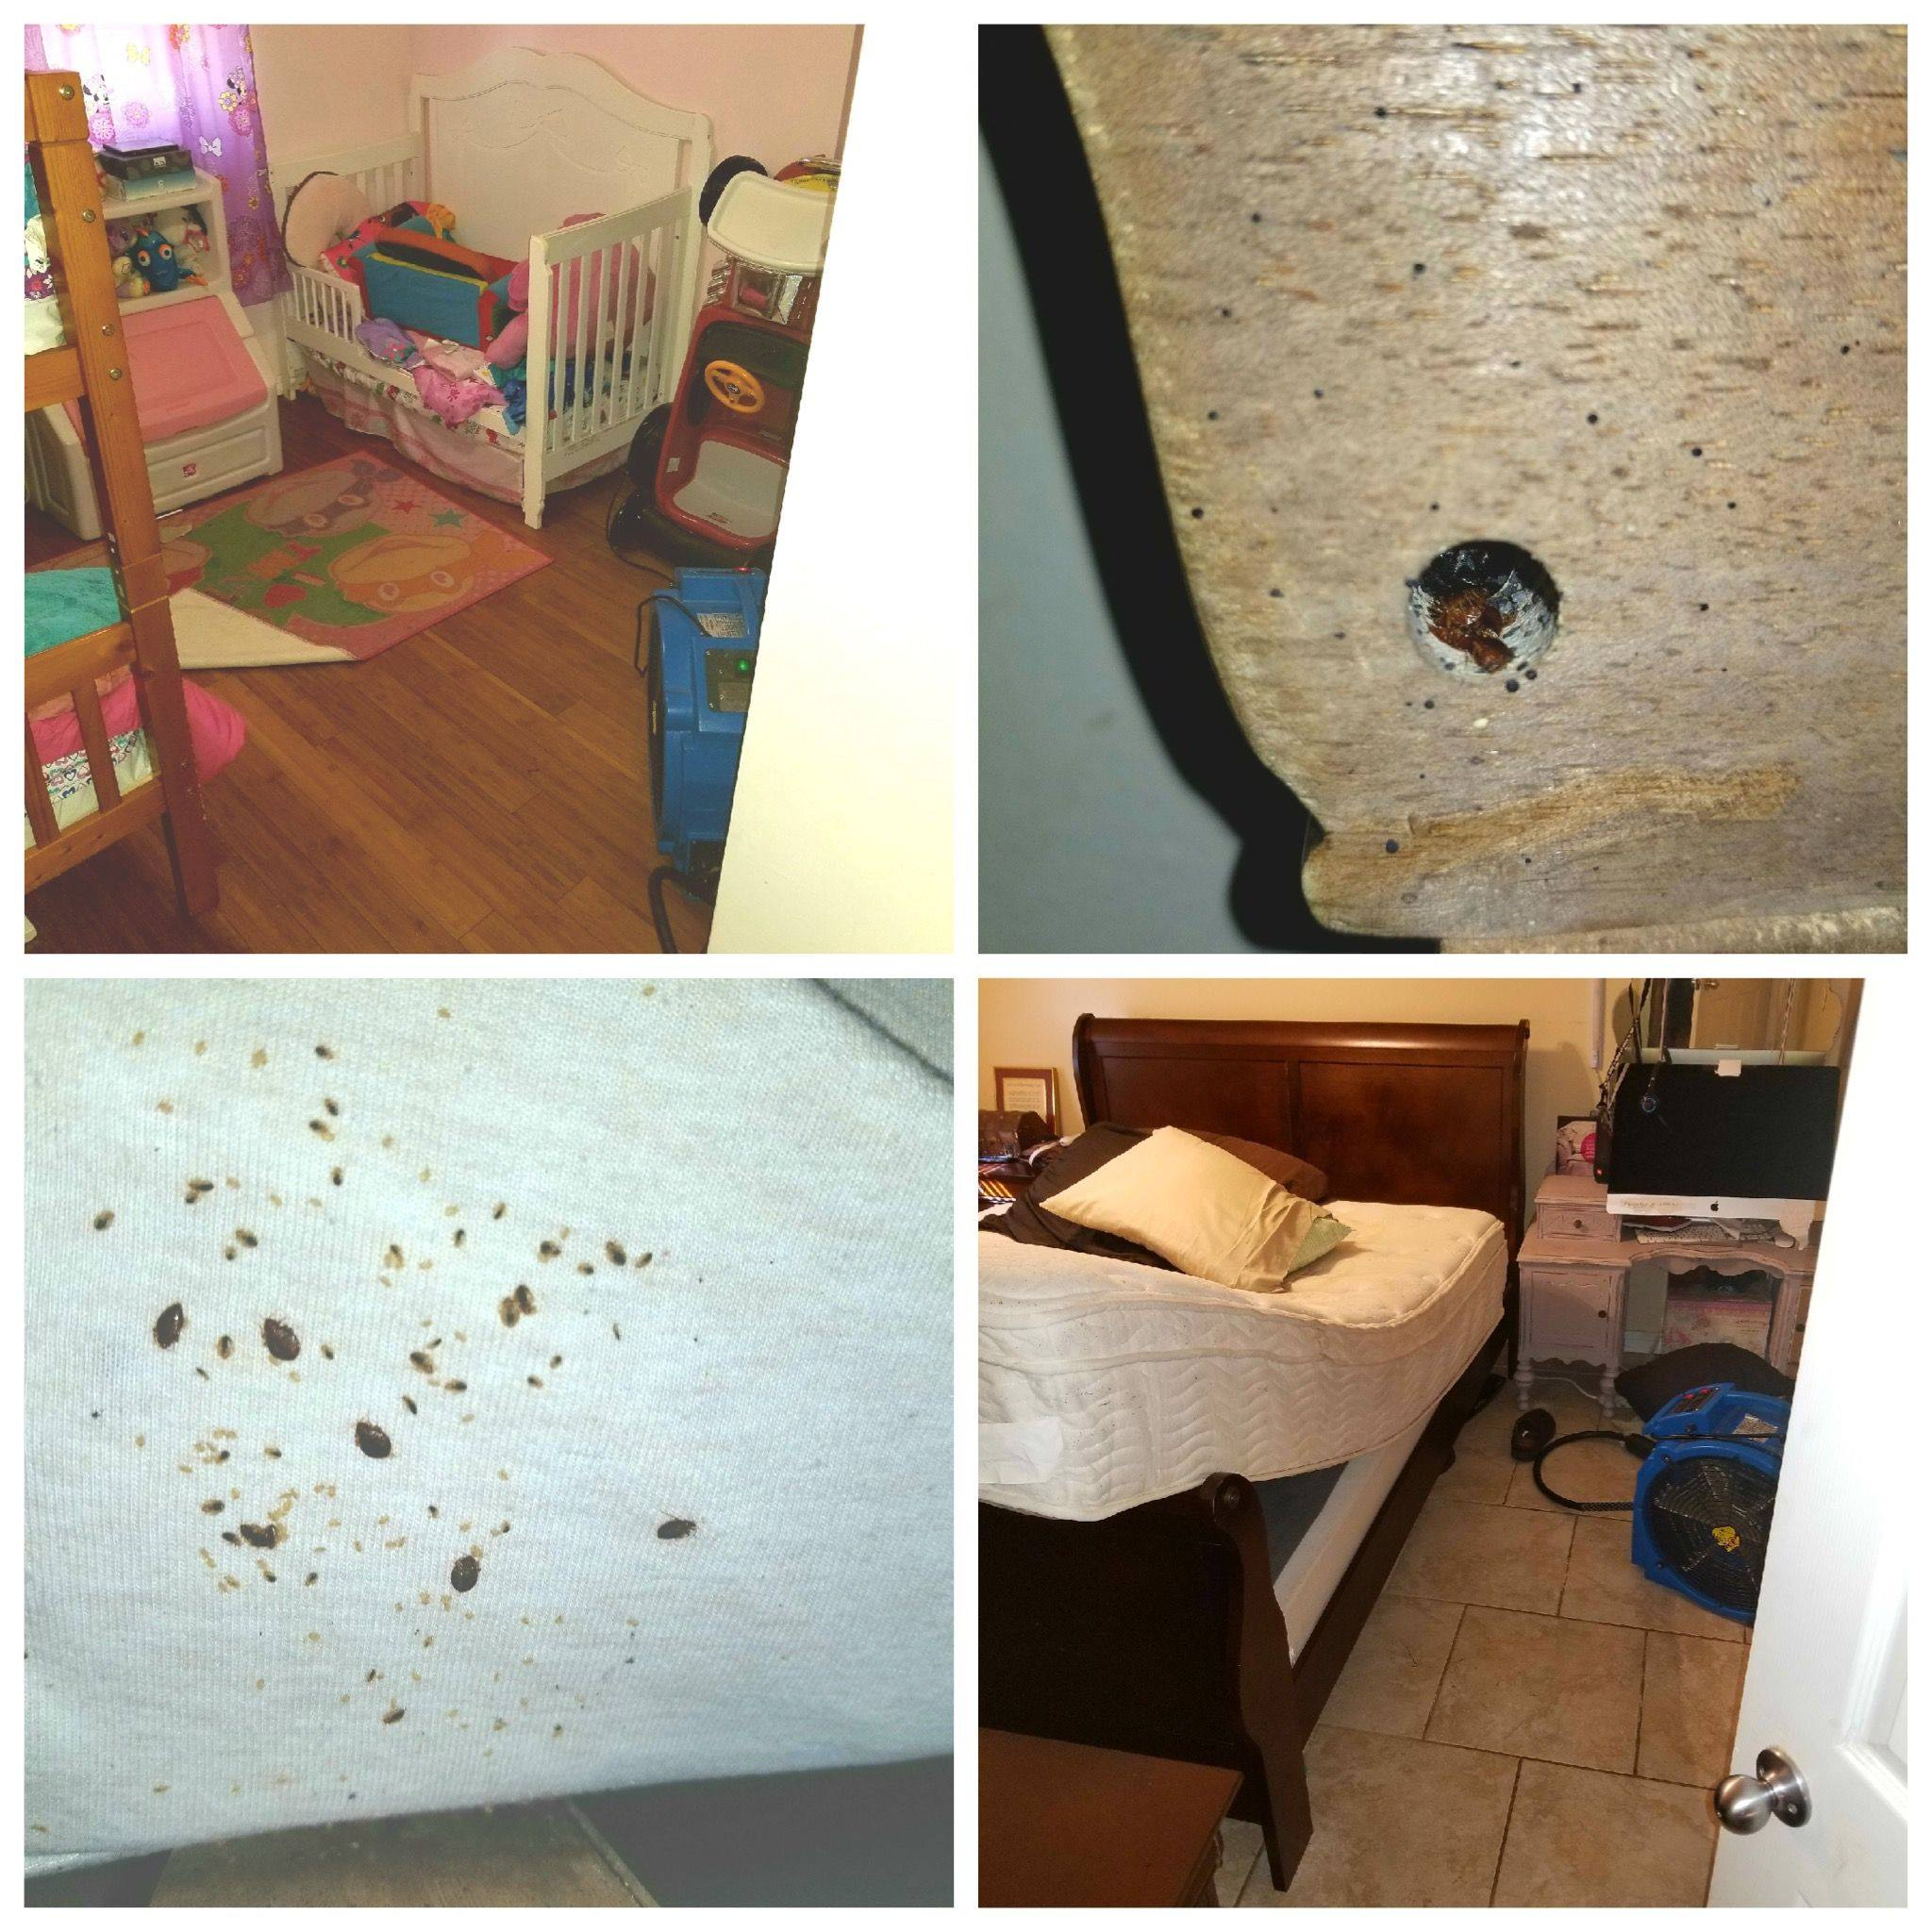 Florida Bed Bug Control